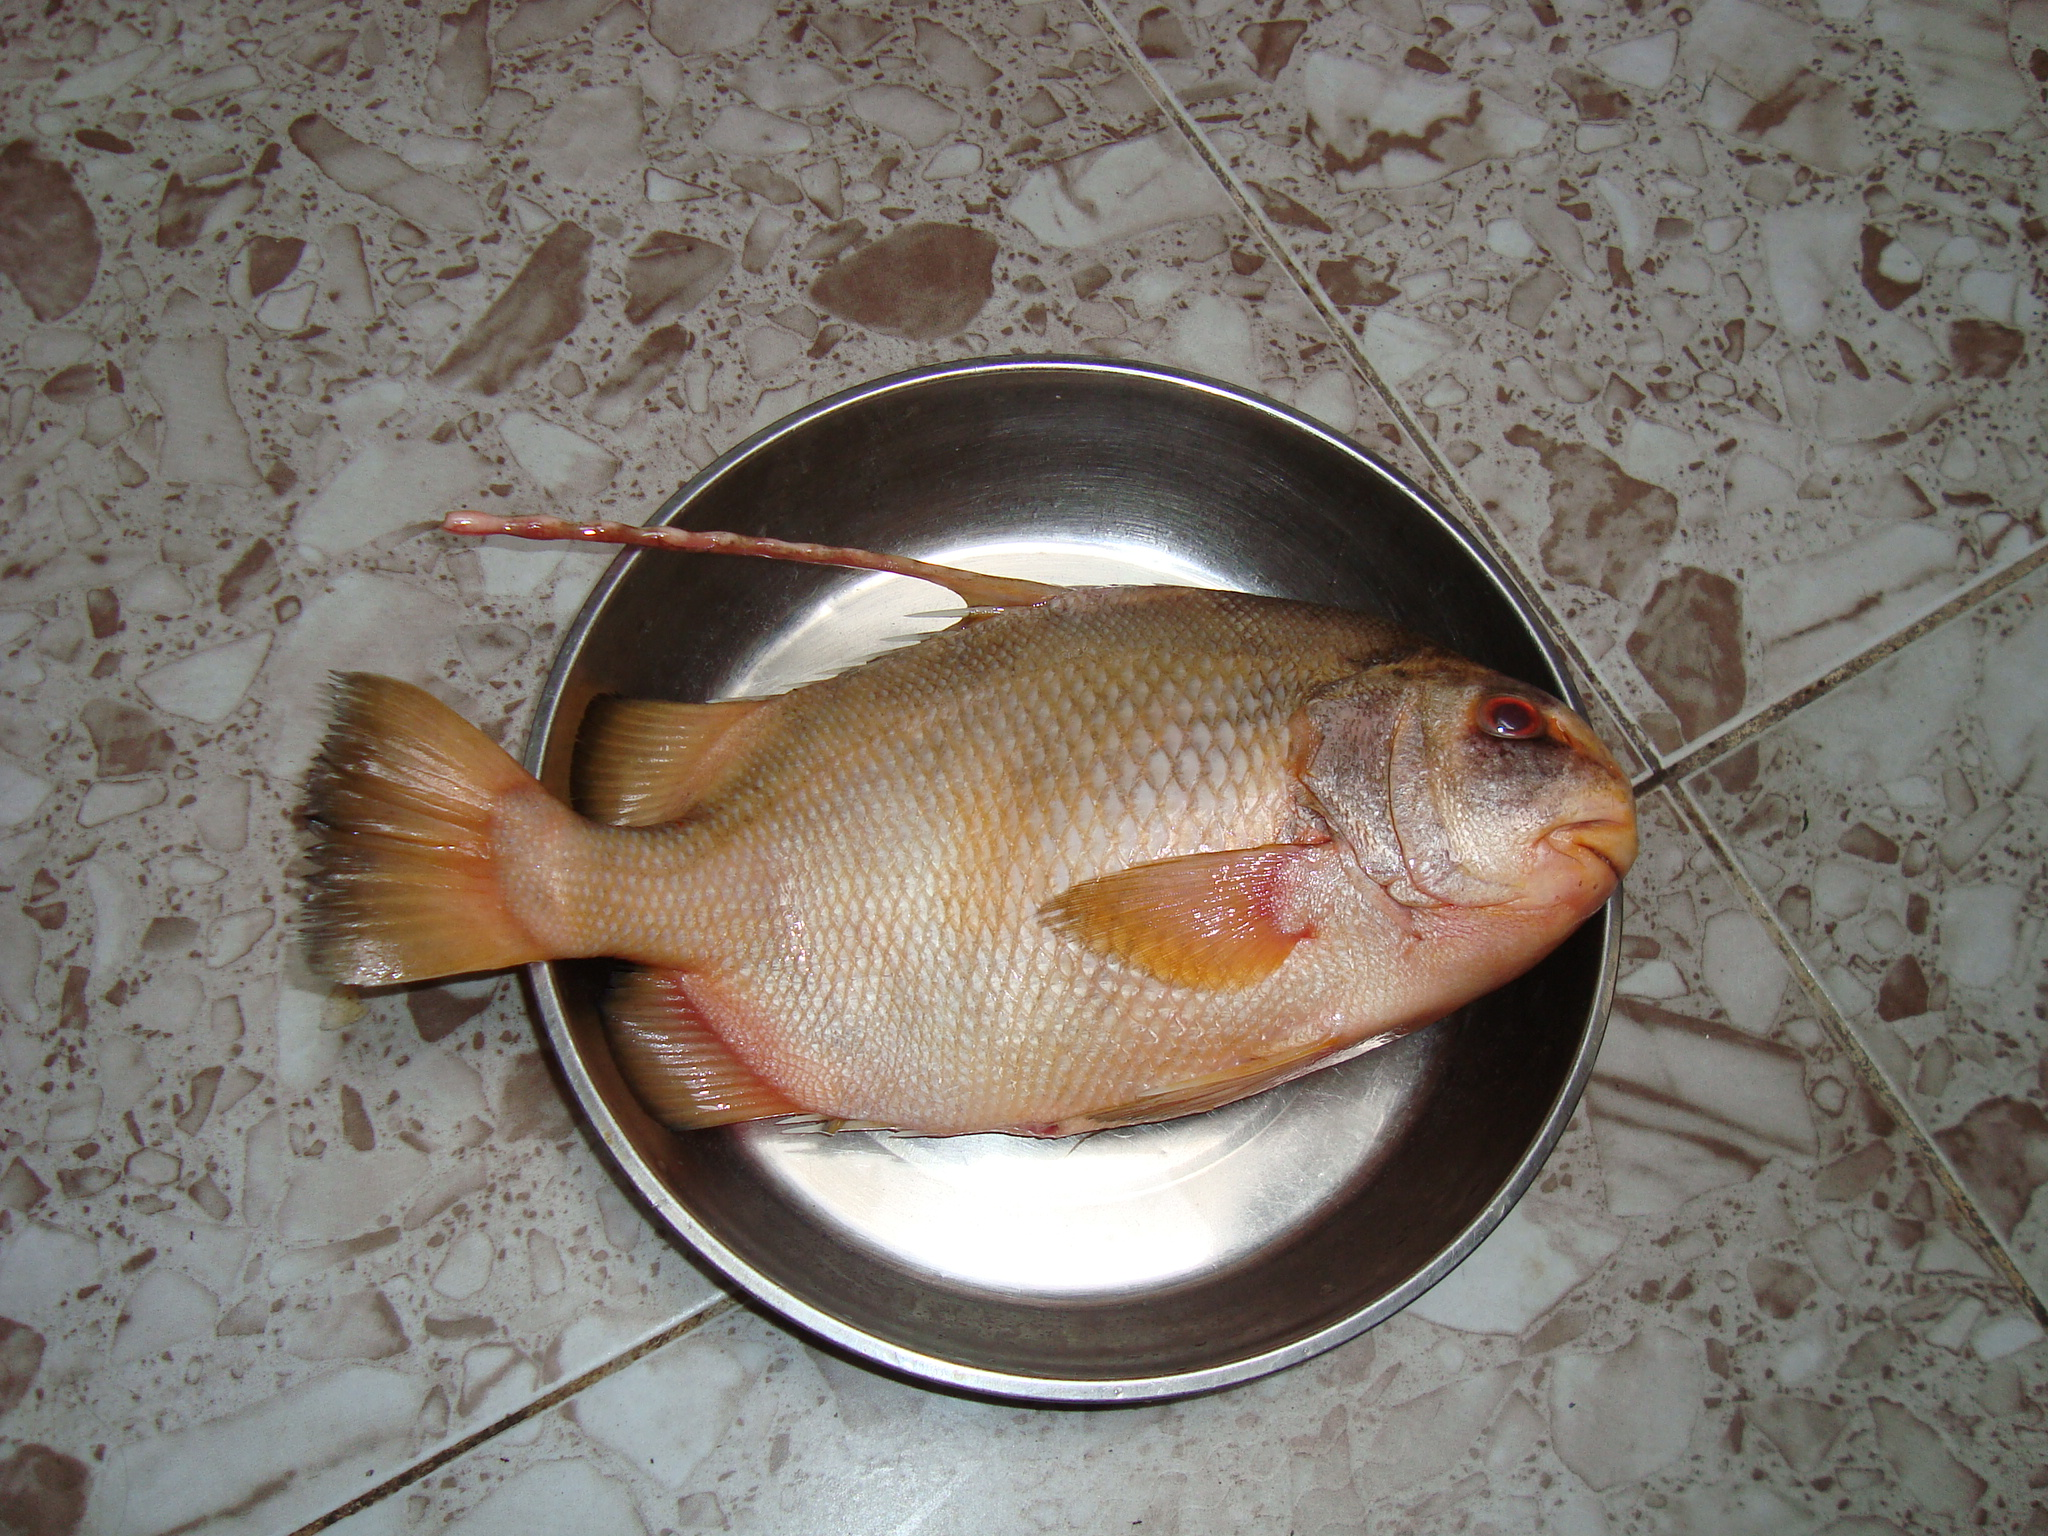 https://upload.wikimedia.org/wikipedia/commons/9/9c/Chia-voi_fish.JPG